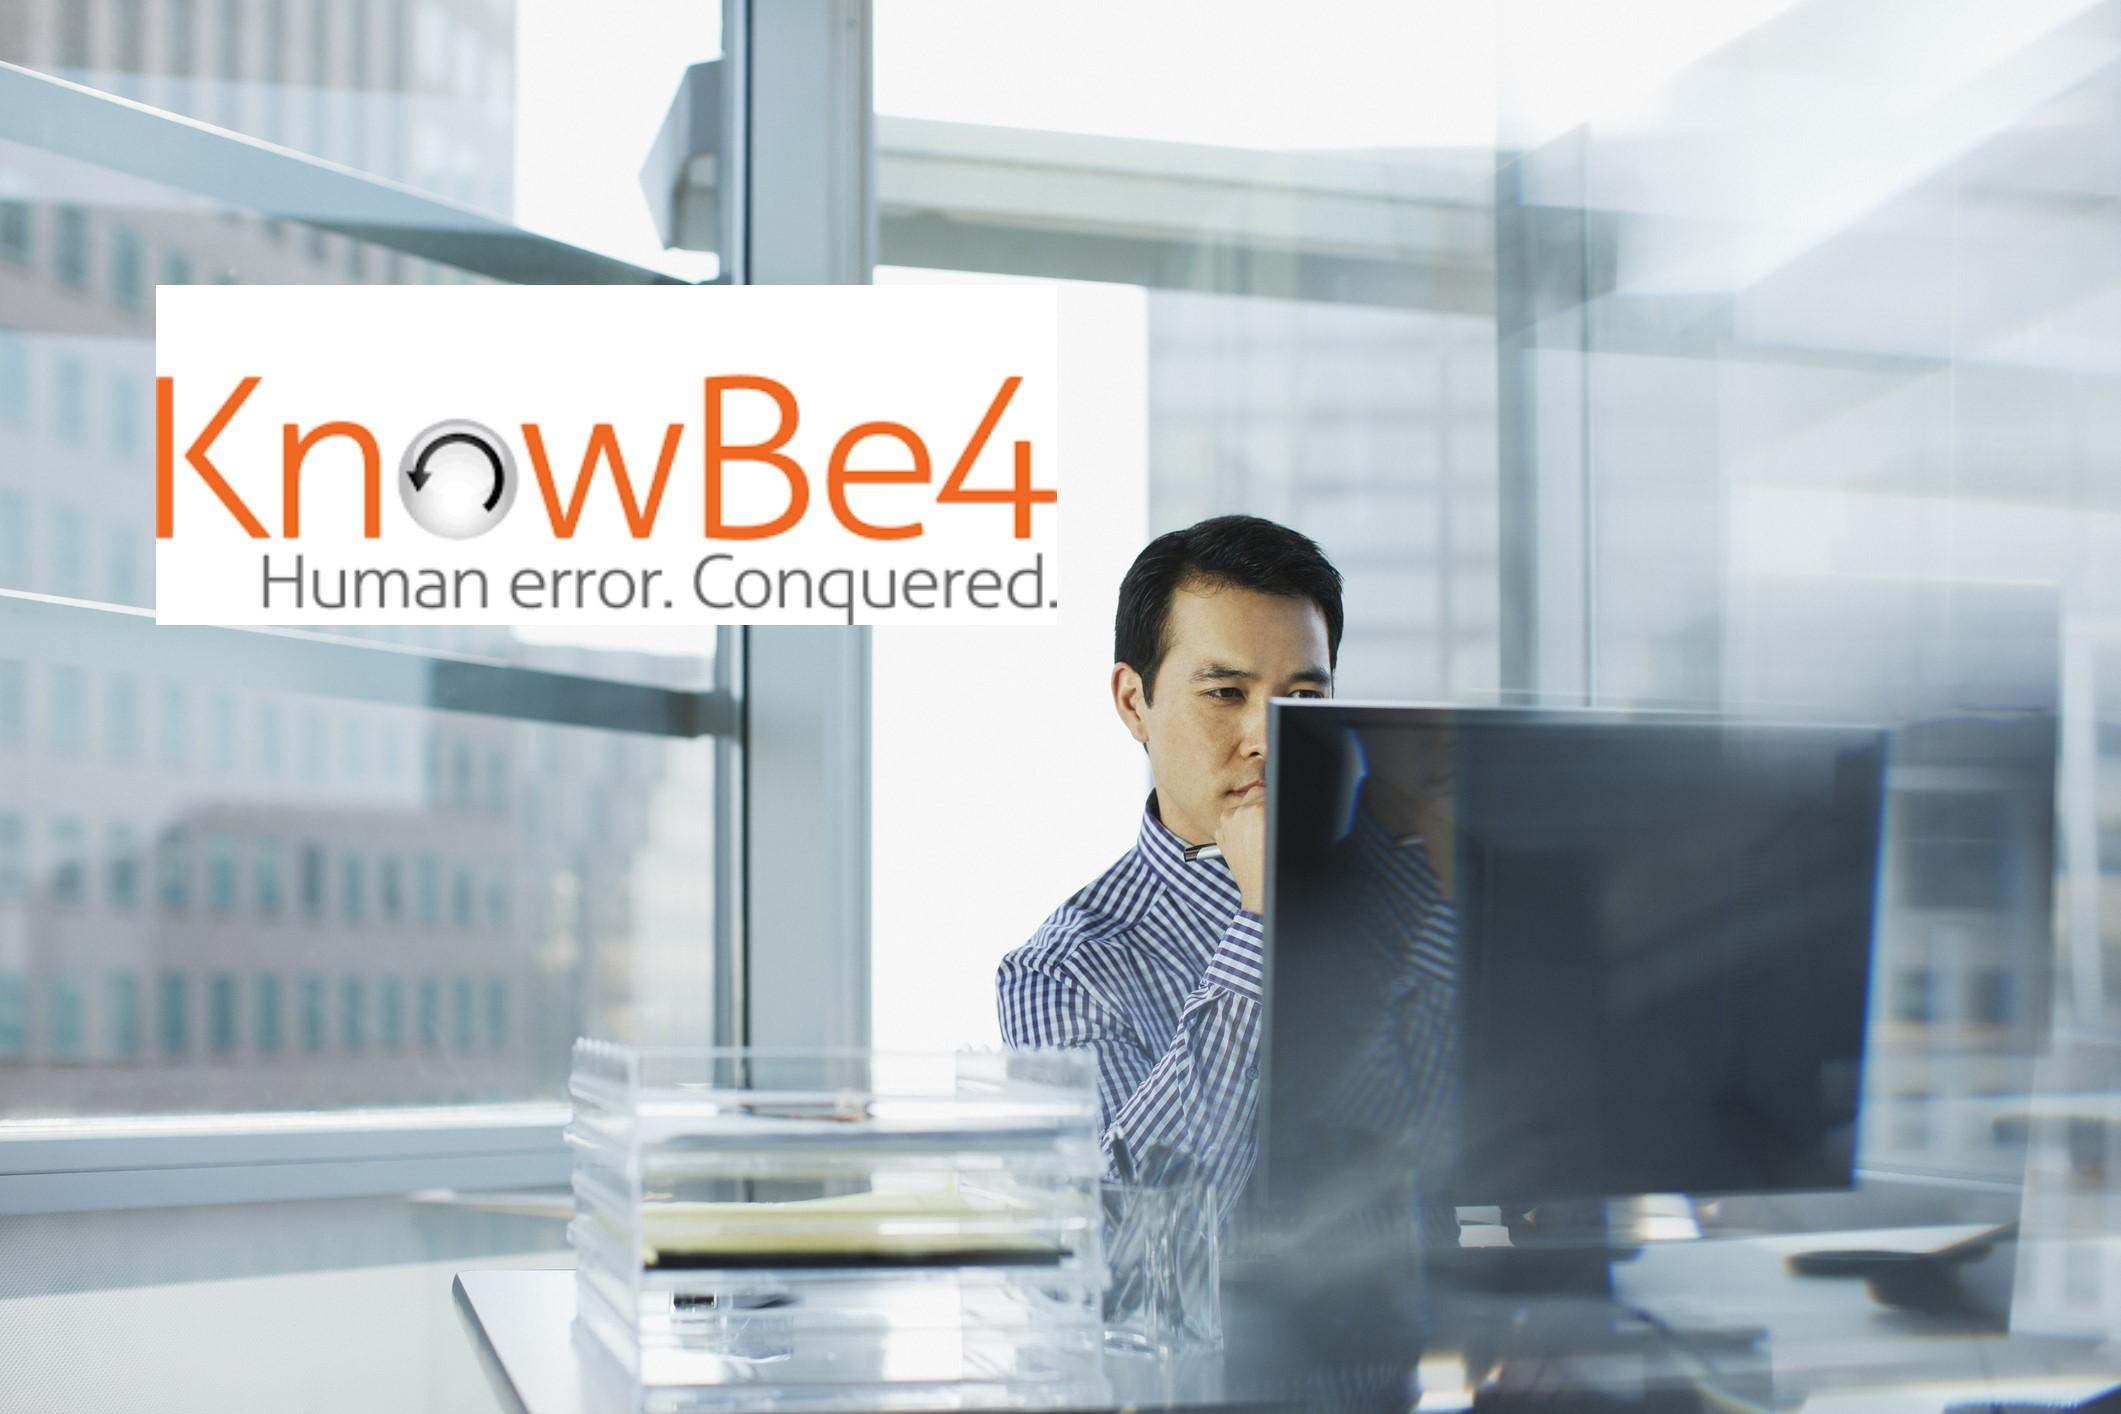 KnowBe4 logo over man on computer